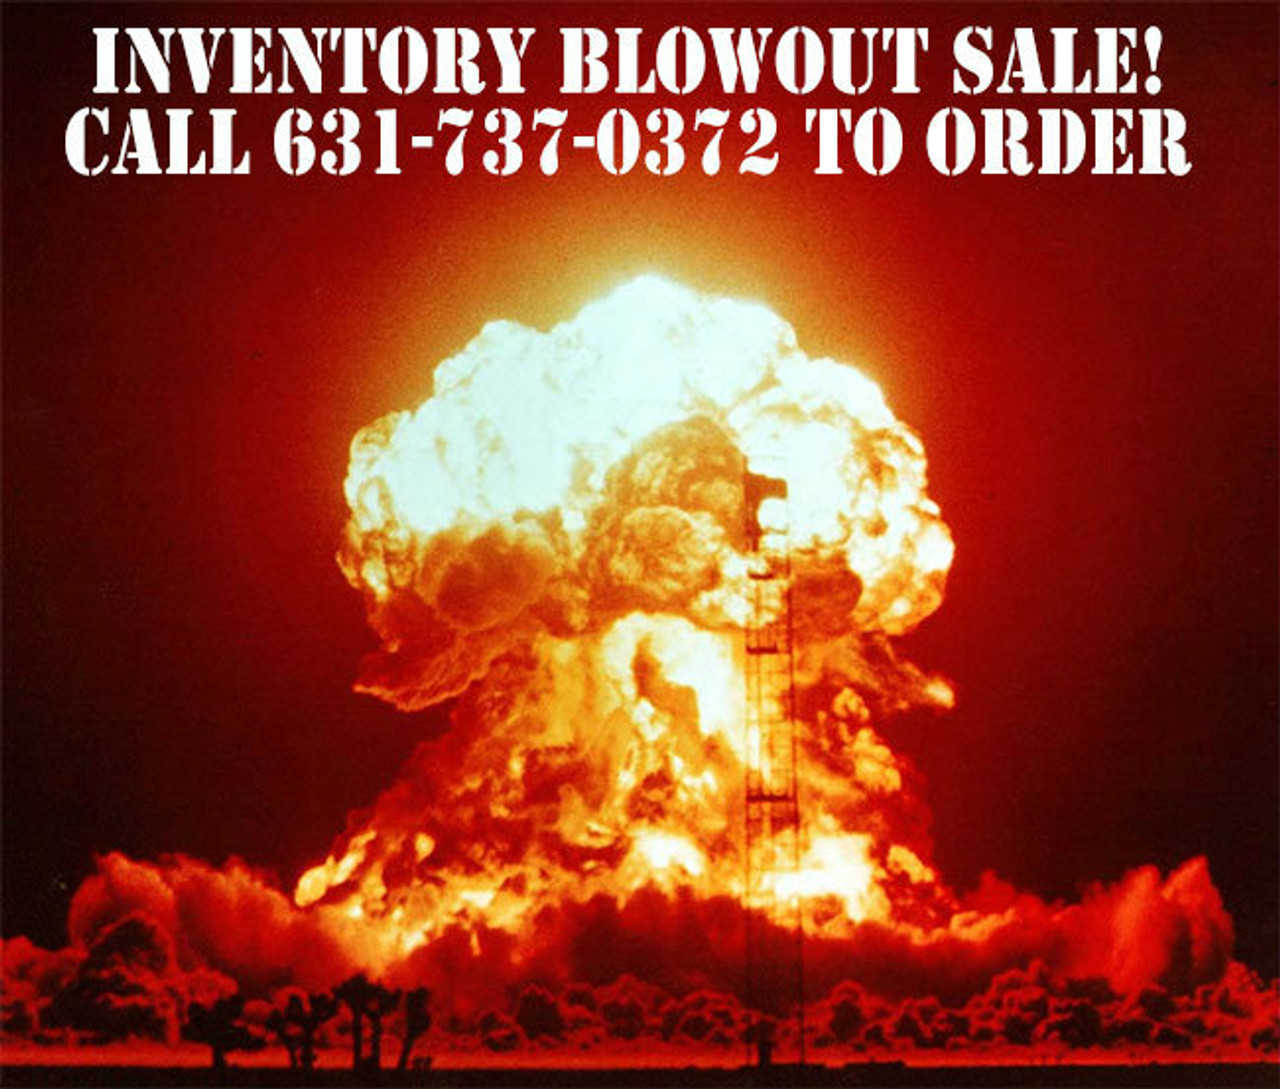 BILL MITCHELL'S GARAGE SALE, INVENTORY BLOWOUT! (CLICK HERE/MORE INFO)